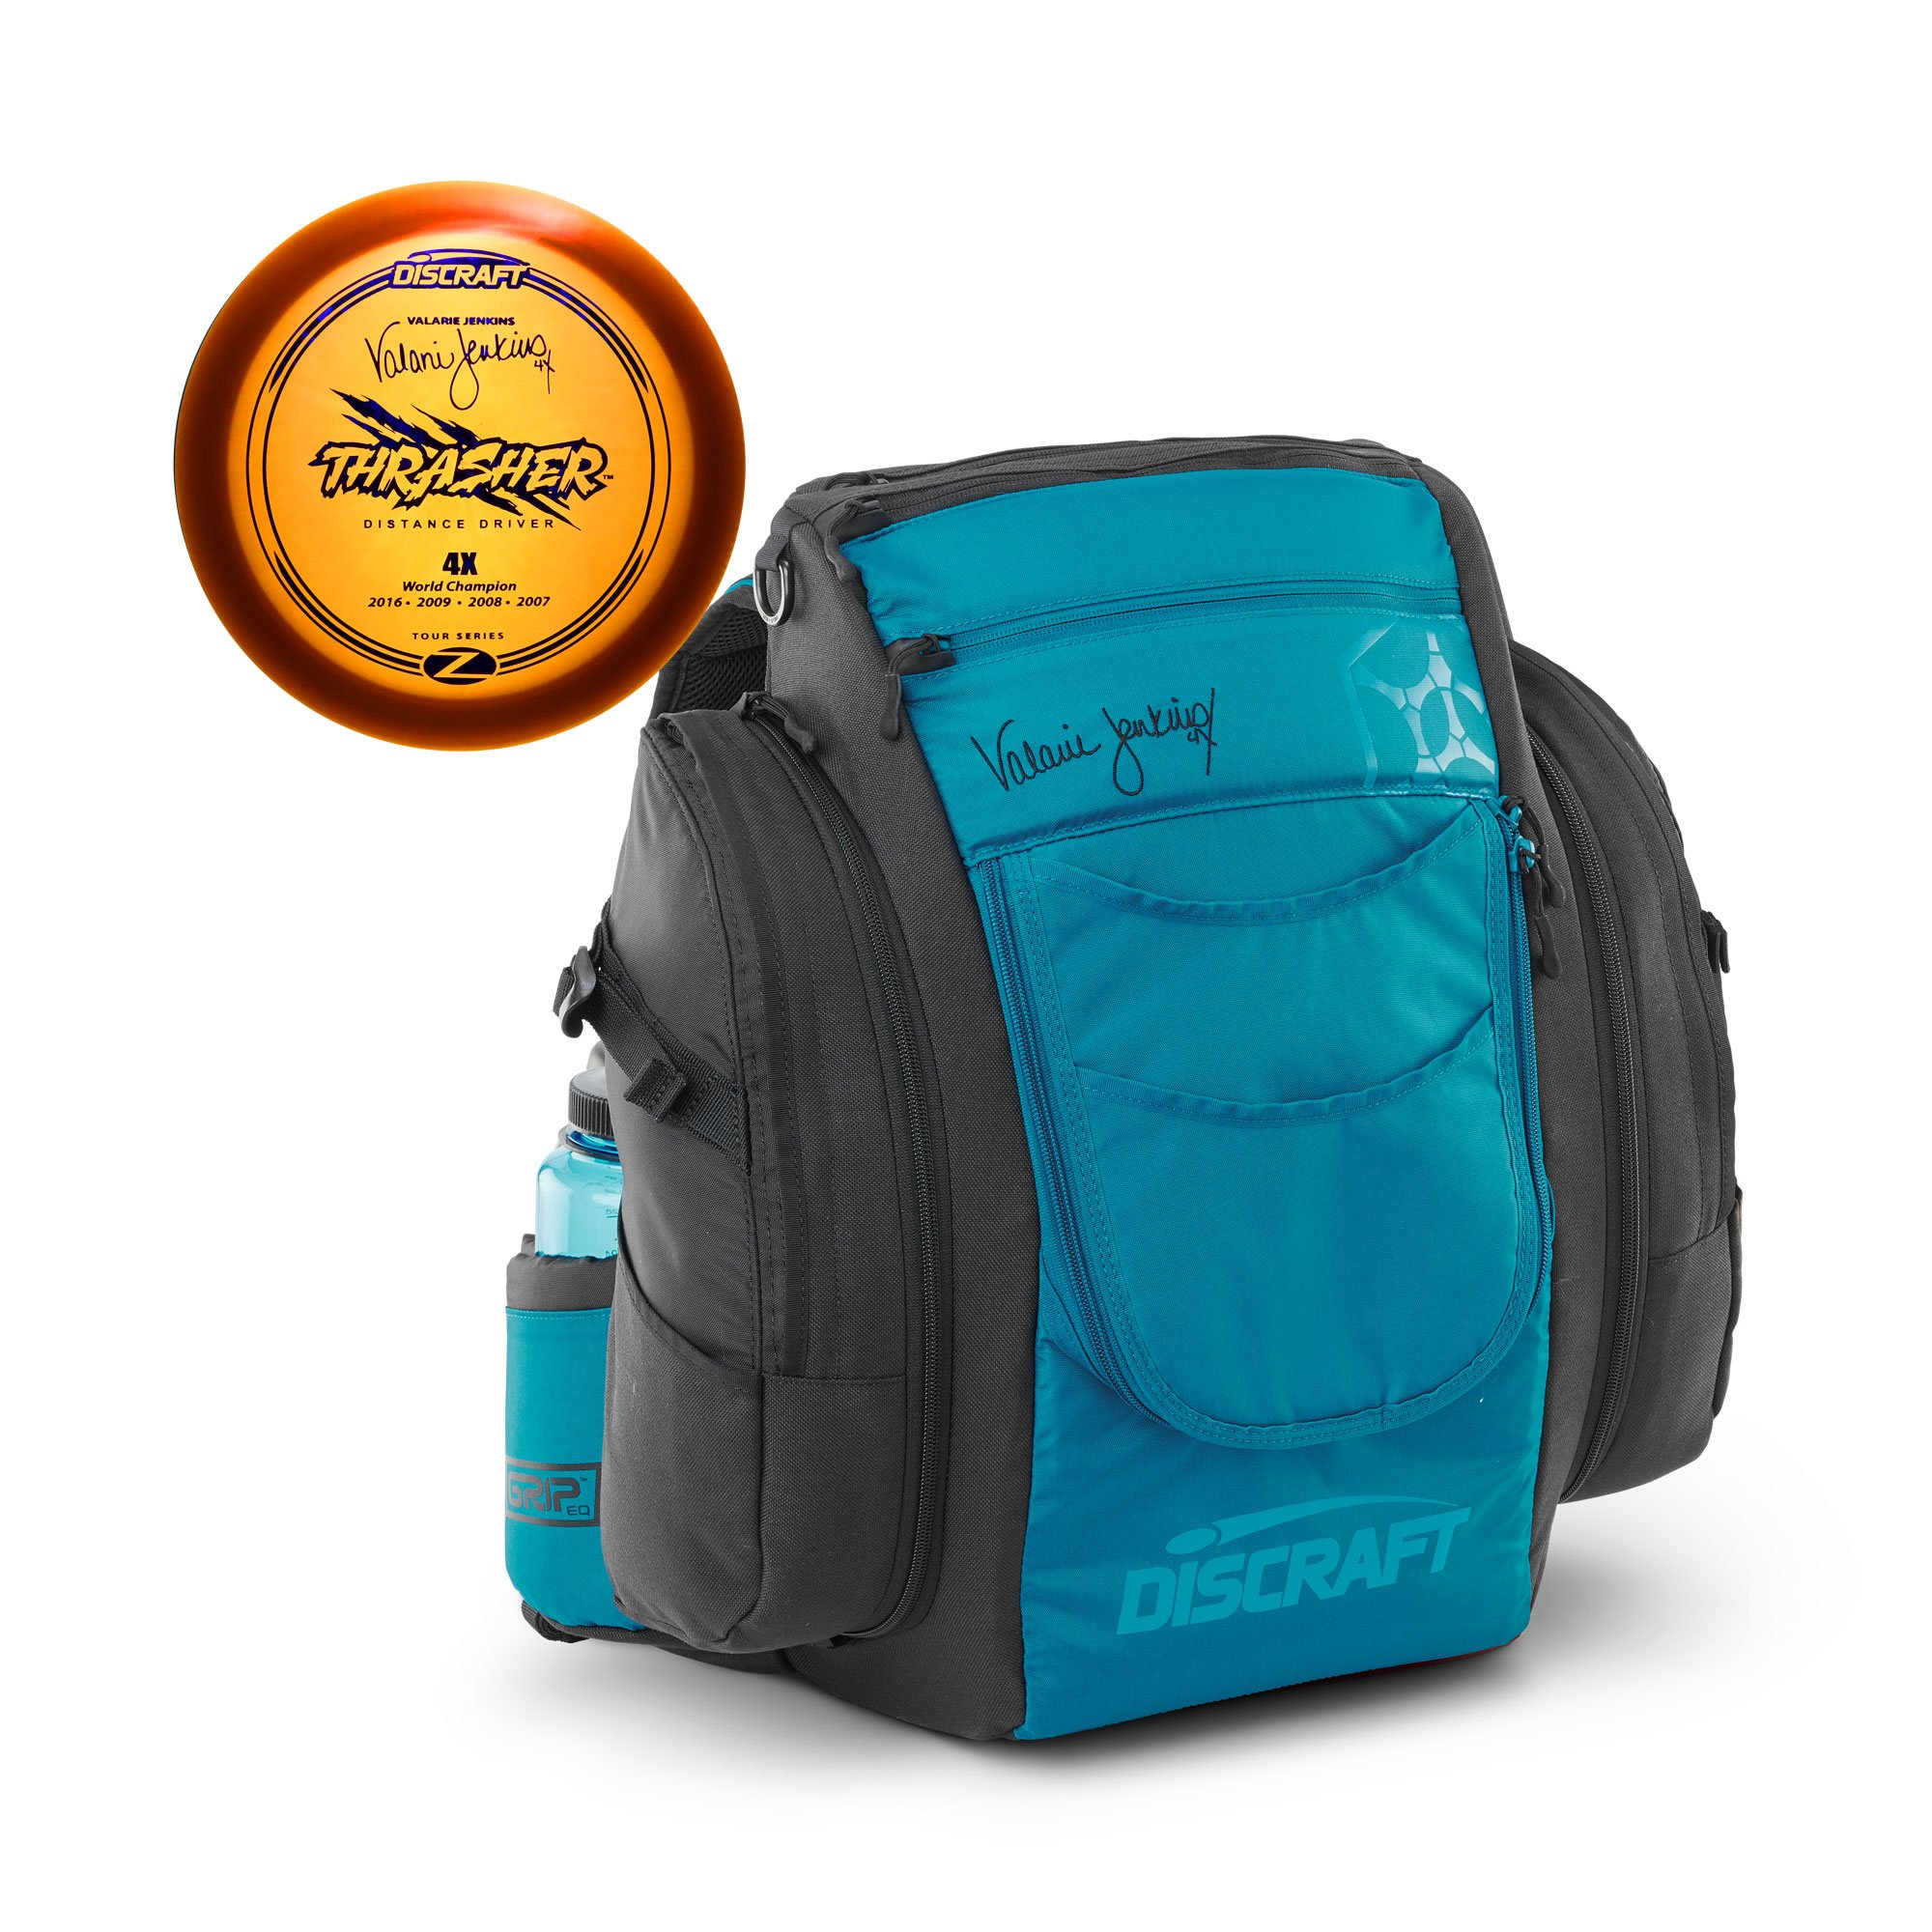 Discraft Valarie Jenkins Signature Disc Golf Bag with Bonus Tour Series Disc by Discraft